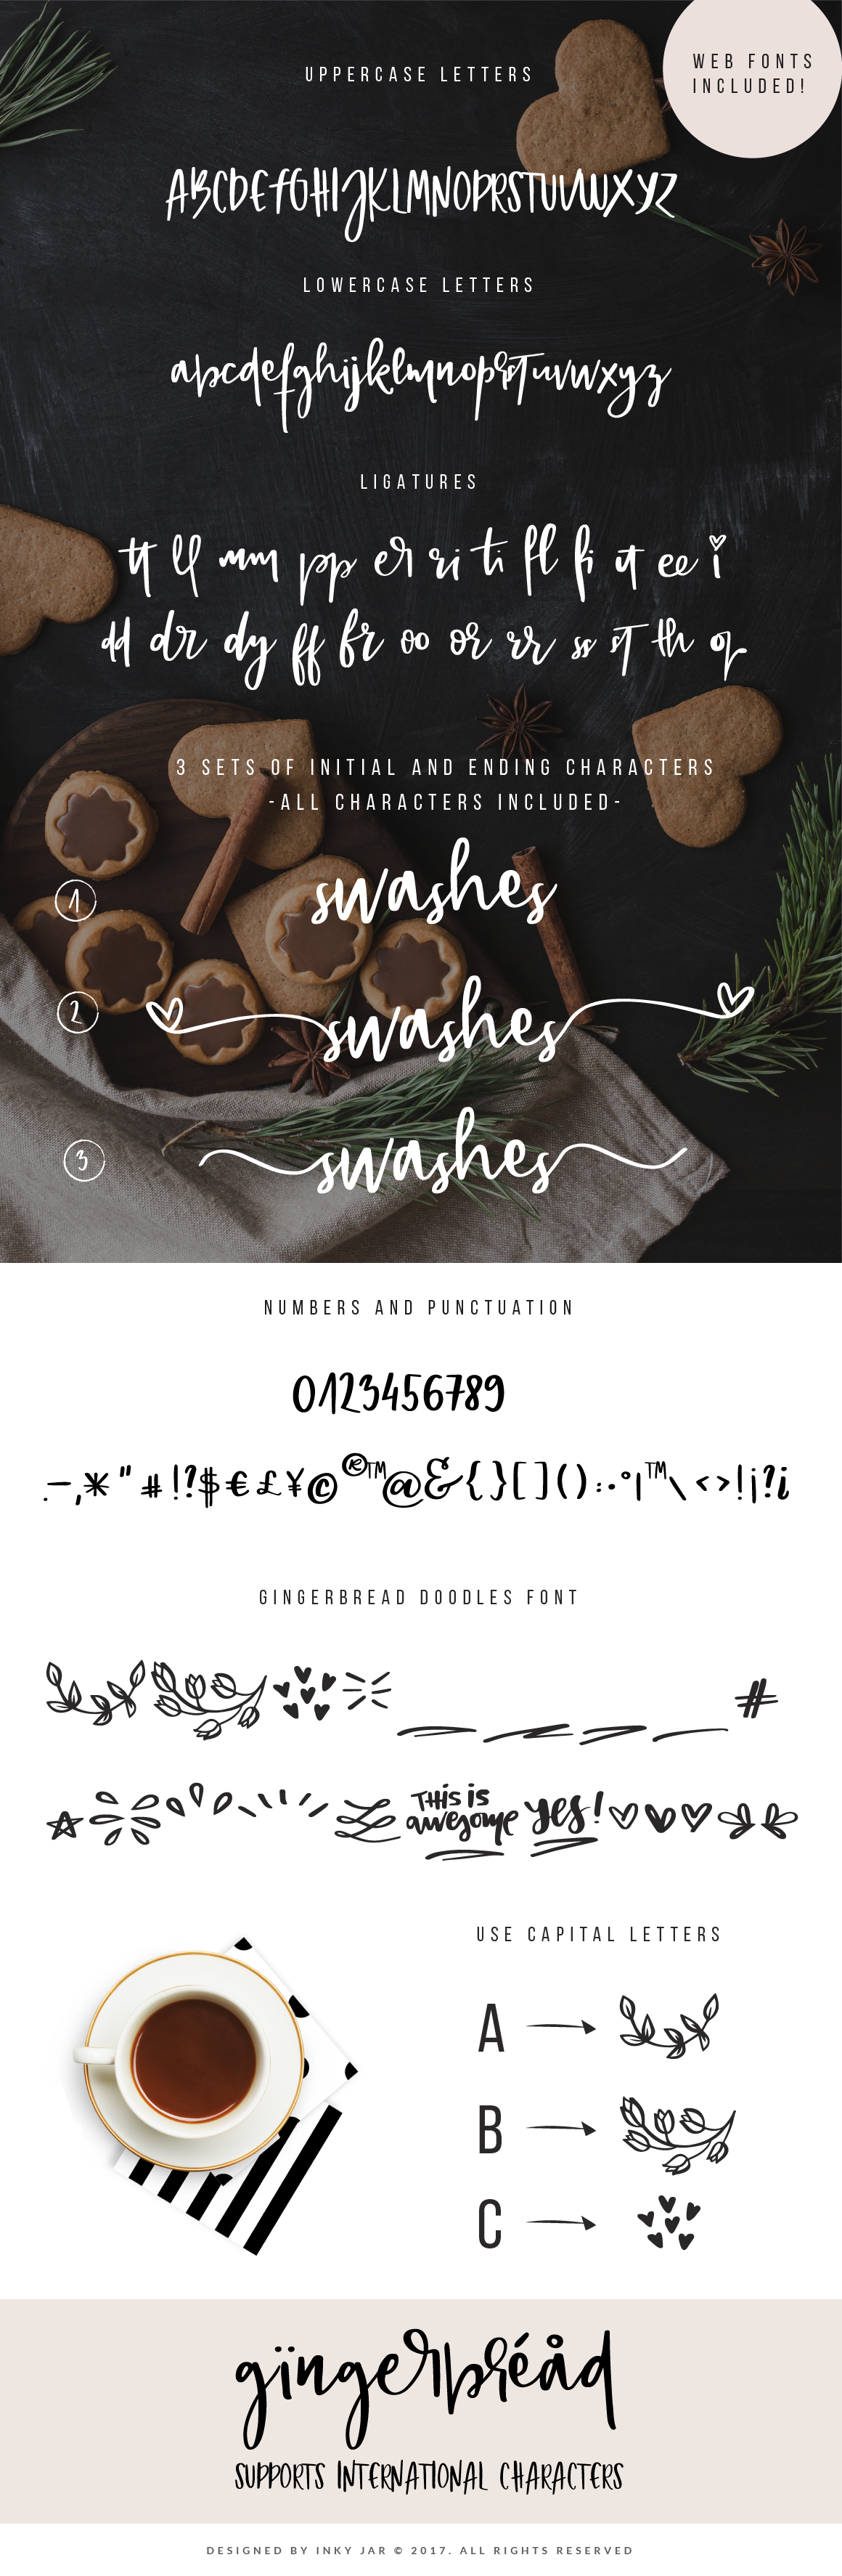 Gingerbread Font Duo 9 Premade Logo templates example image 2